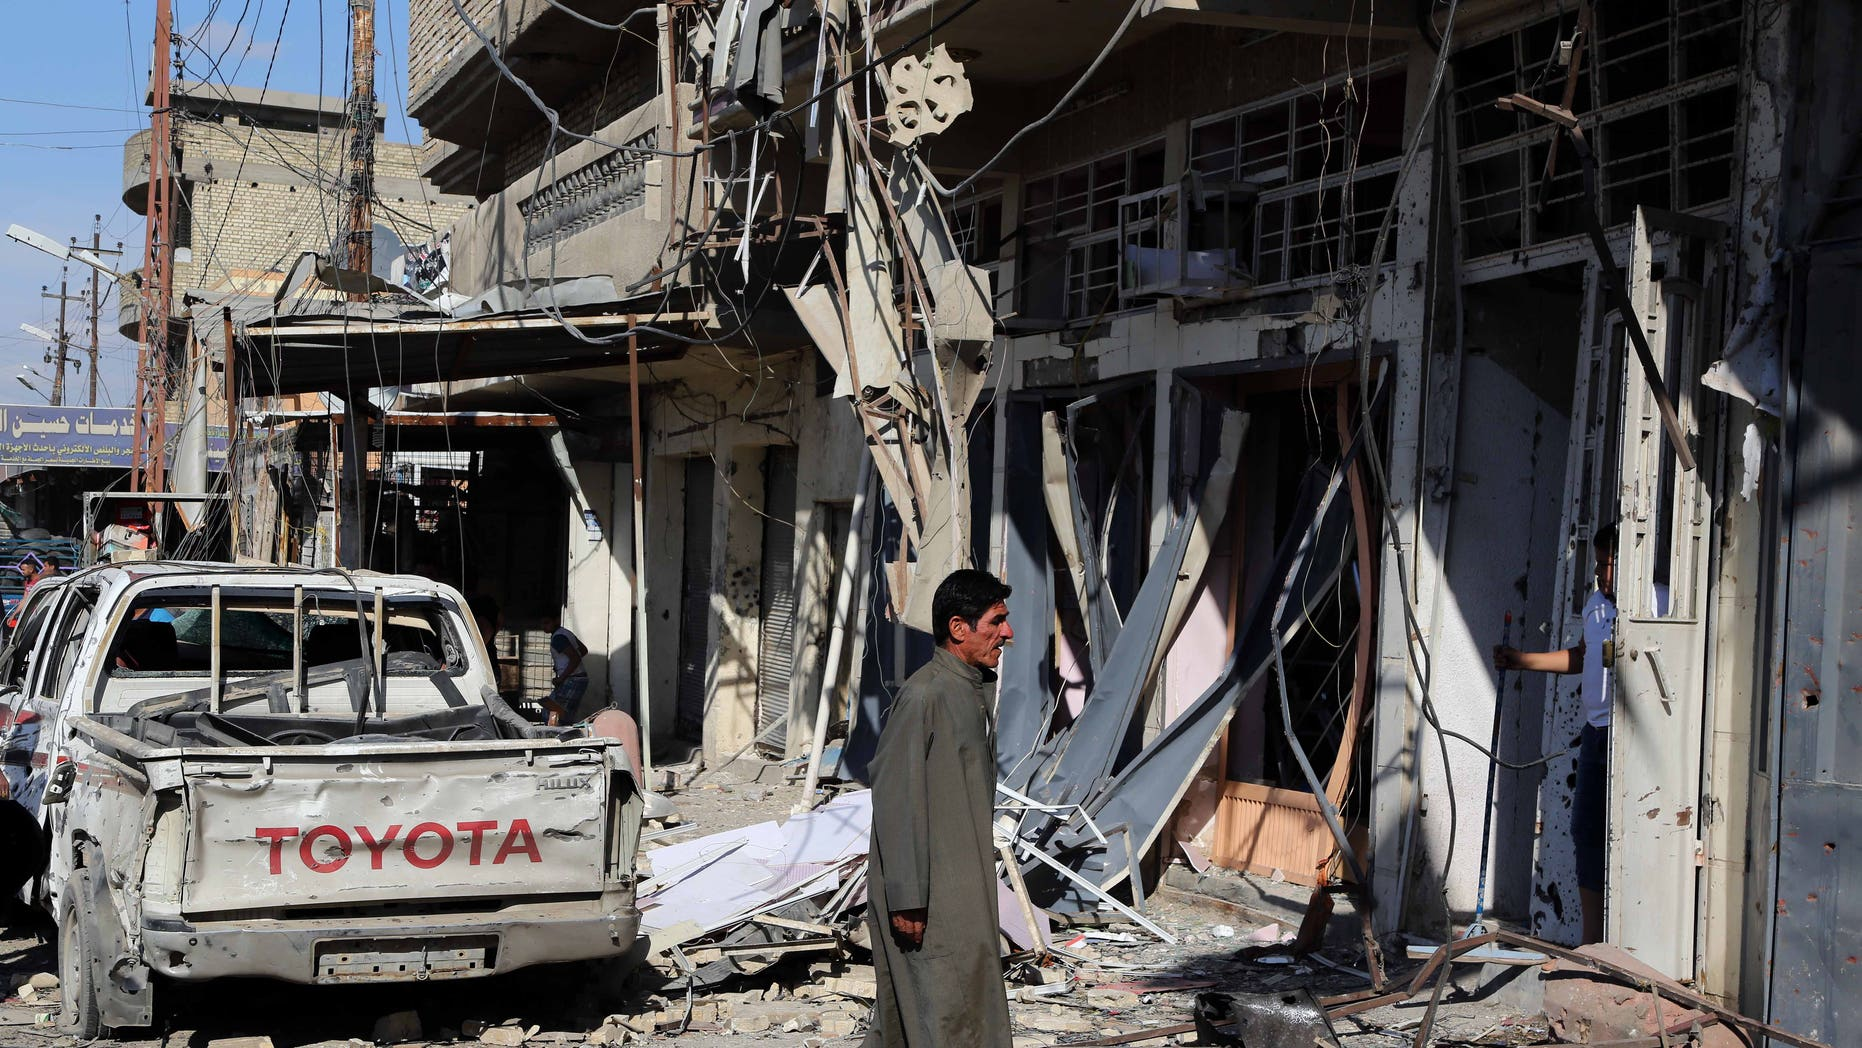 March 23, 2015 - A man inspects the site of a car bomb explosion in a busy commercial street at the Habibiya section of Baghdad's Sadr City, Iraq. Multiple bombings in the Iraqi capital killed and wounded many, Iraqi officials said.